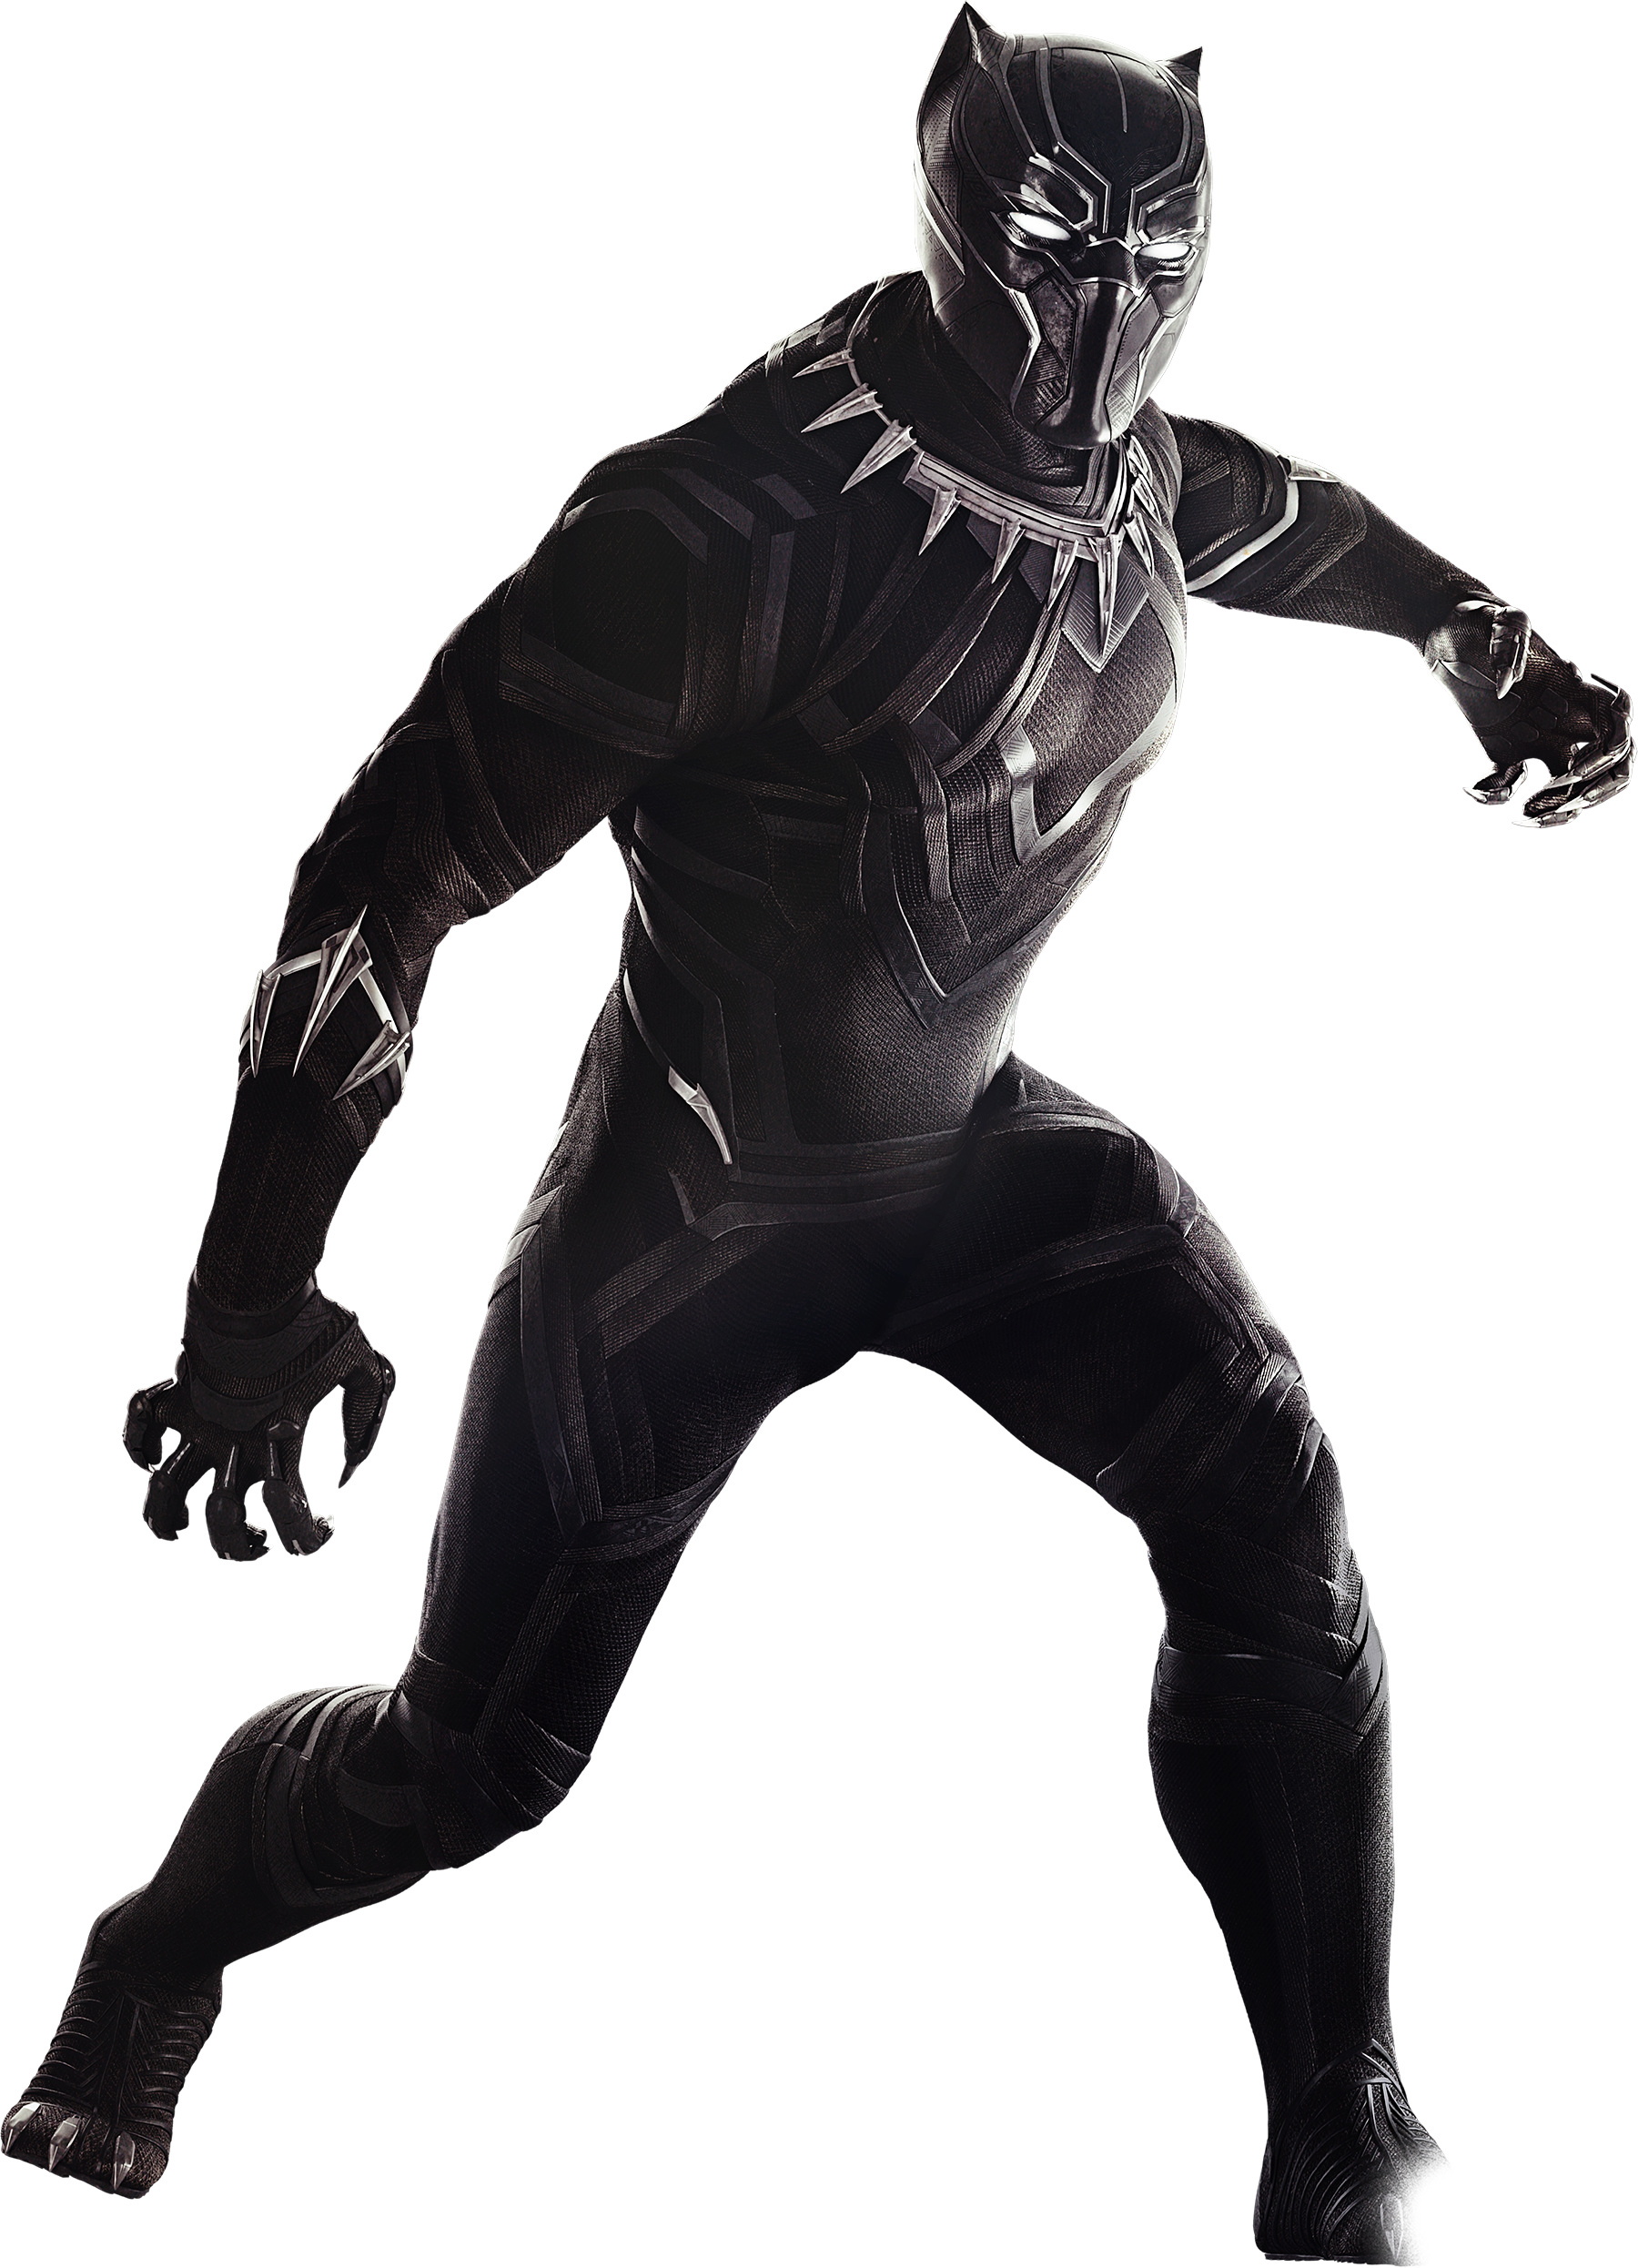 Black panther 2018 png. Image pather marvel movies